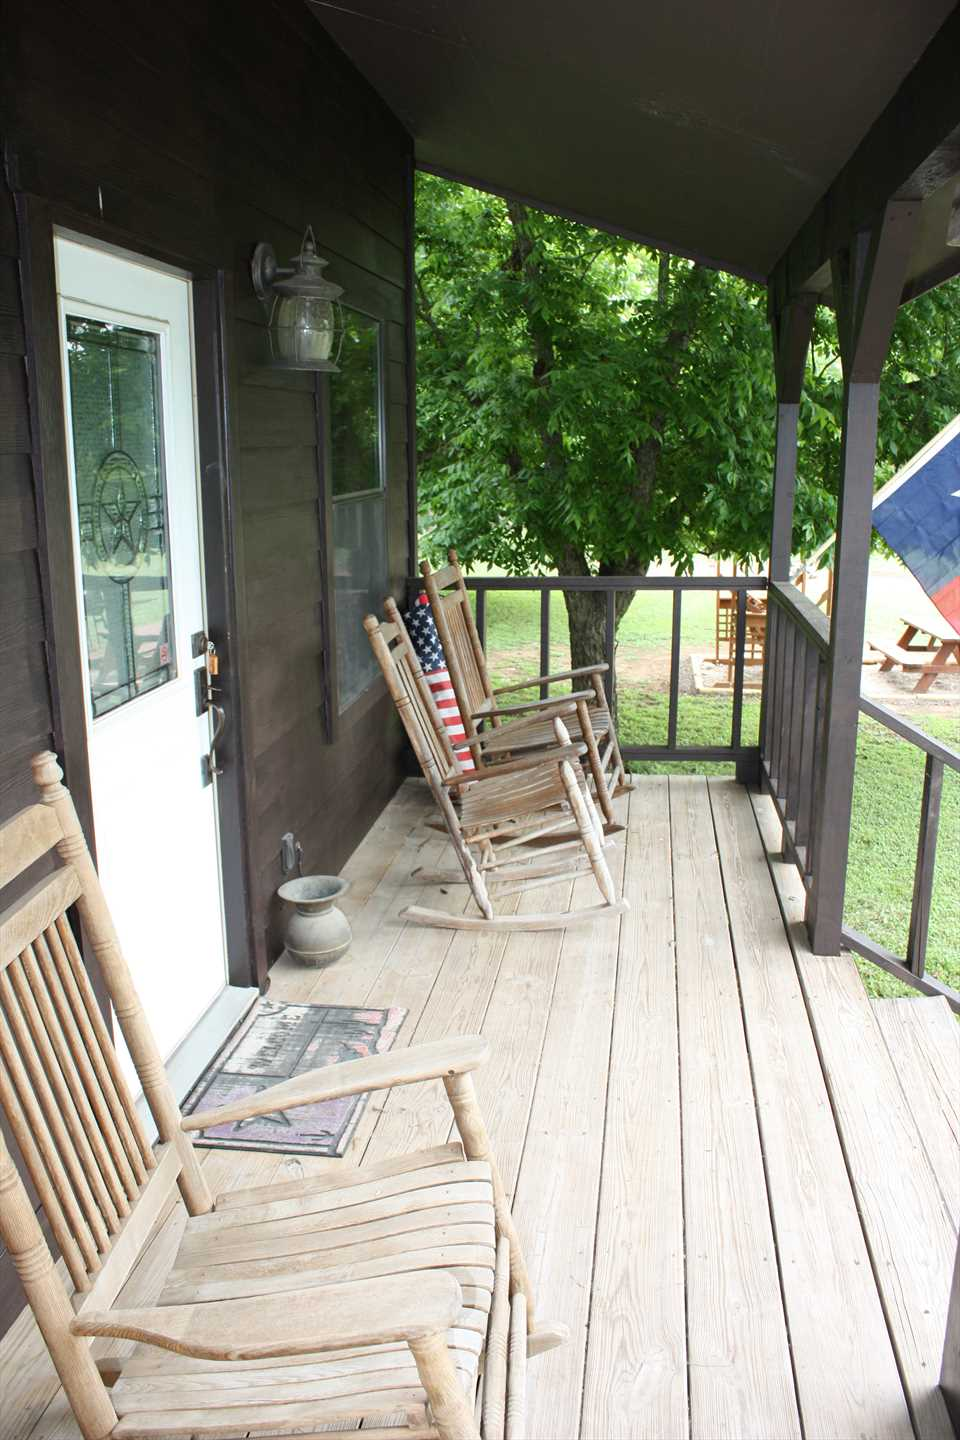 Stretch your legs and enjoy a peaceful moment or two on the country-style rockers on the front porch!